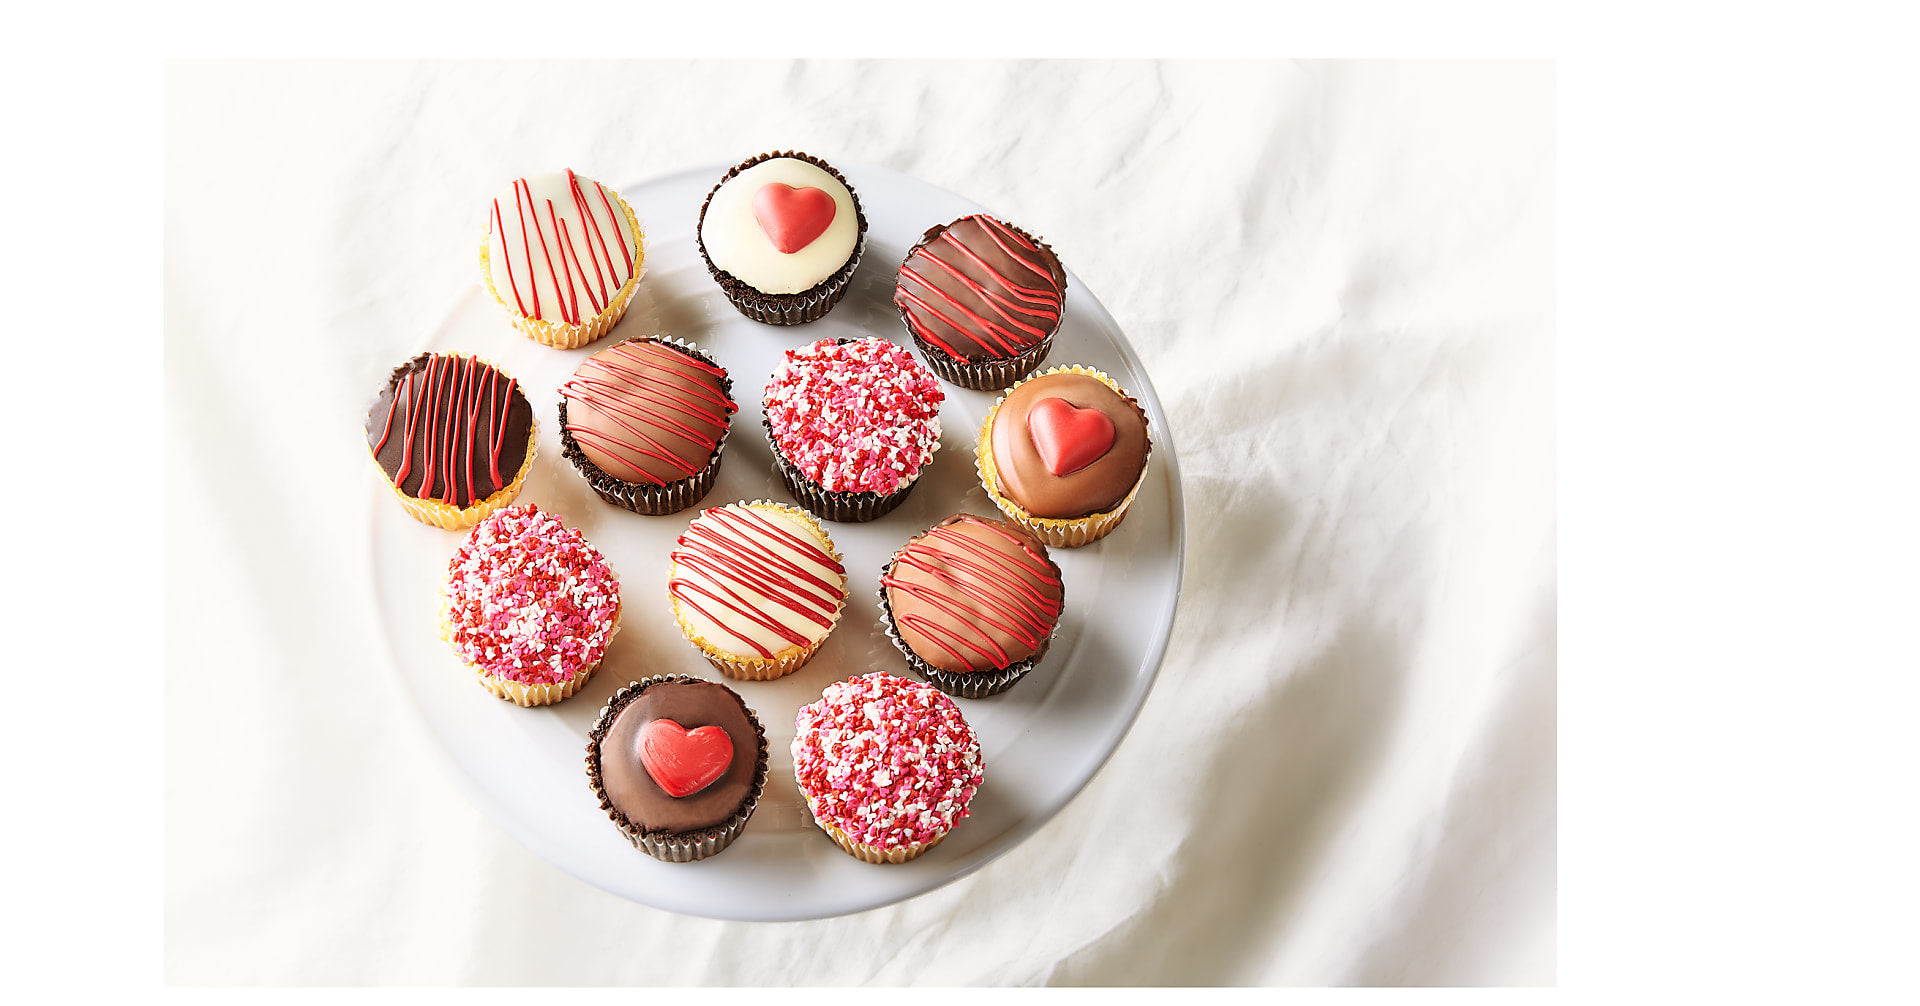 Sweetheart Belgian Chocolate Dipped Cupcakes - Image 2 Of 2